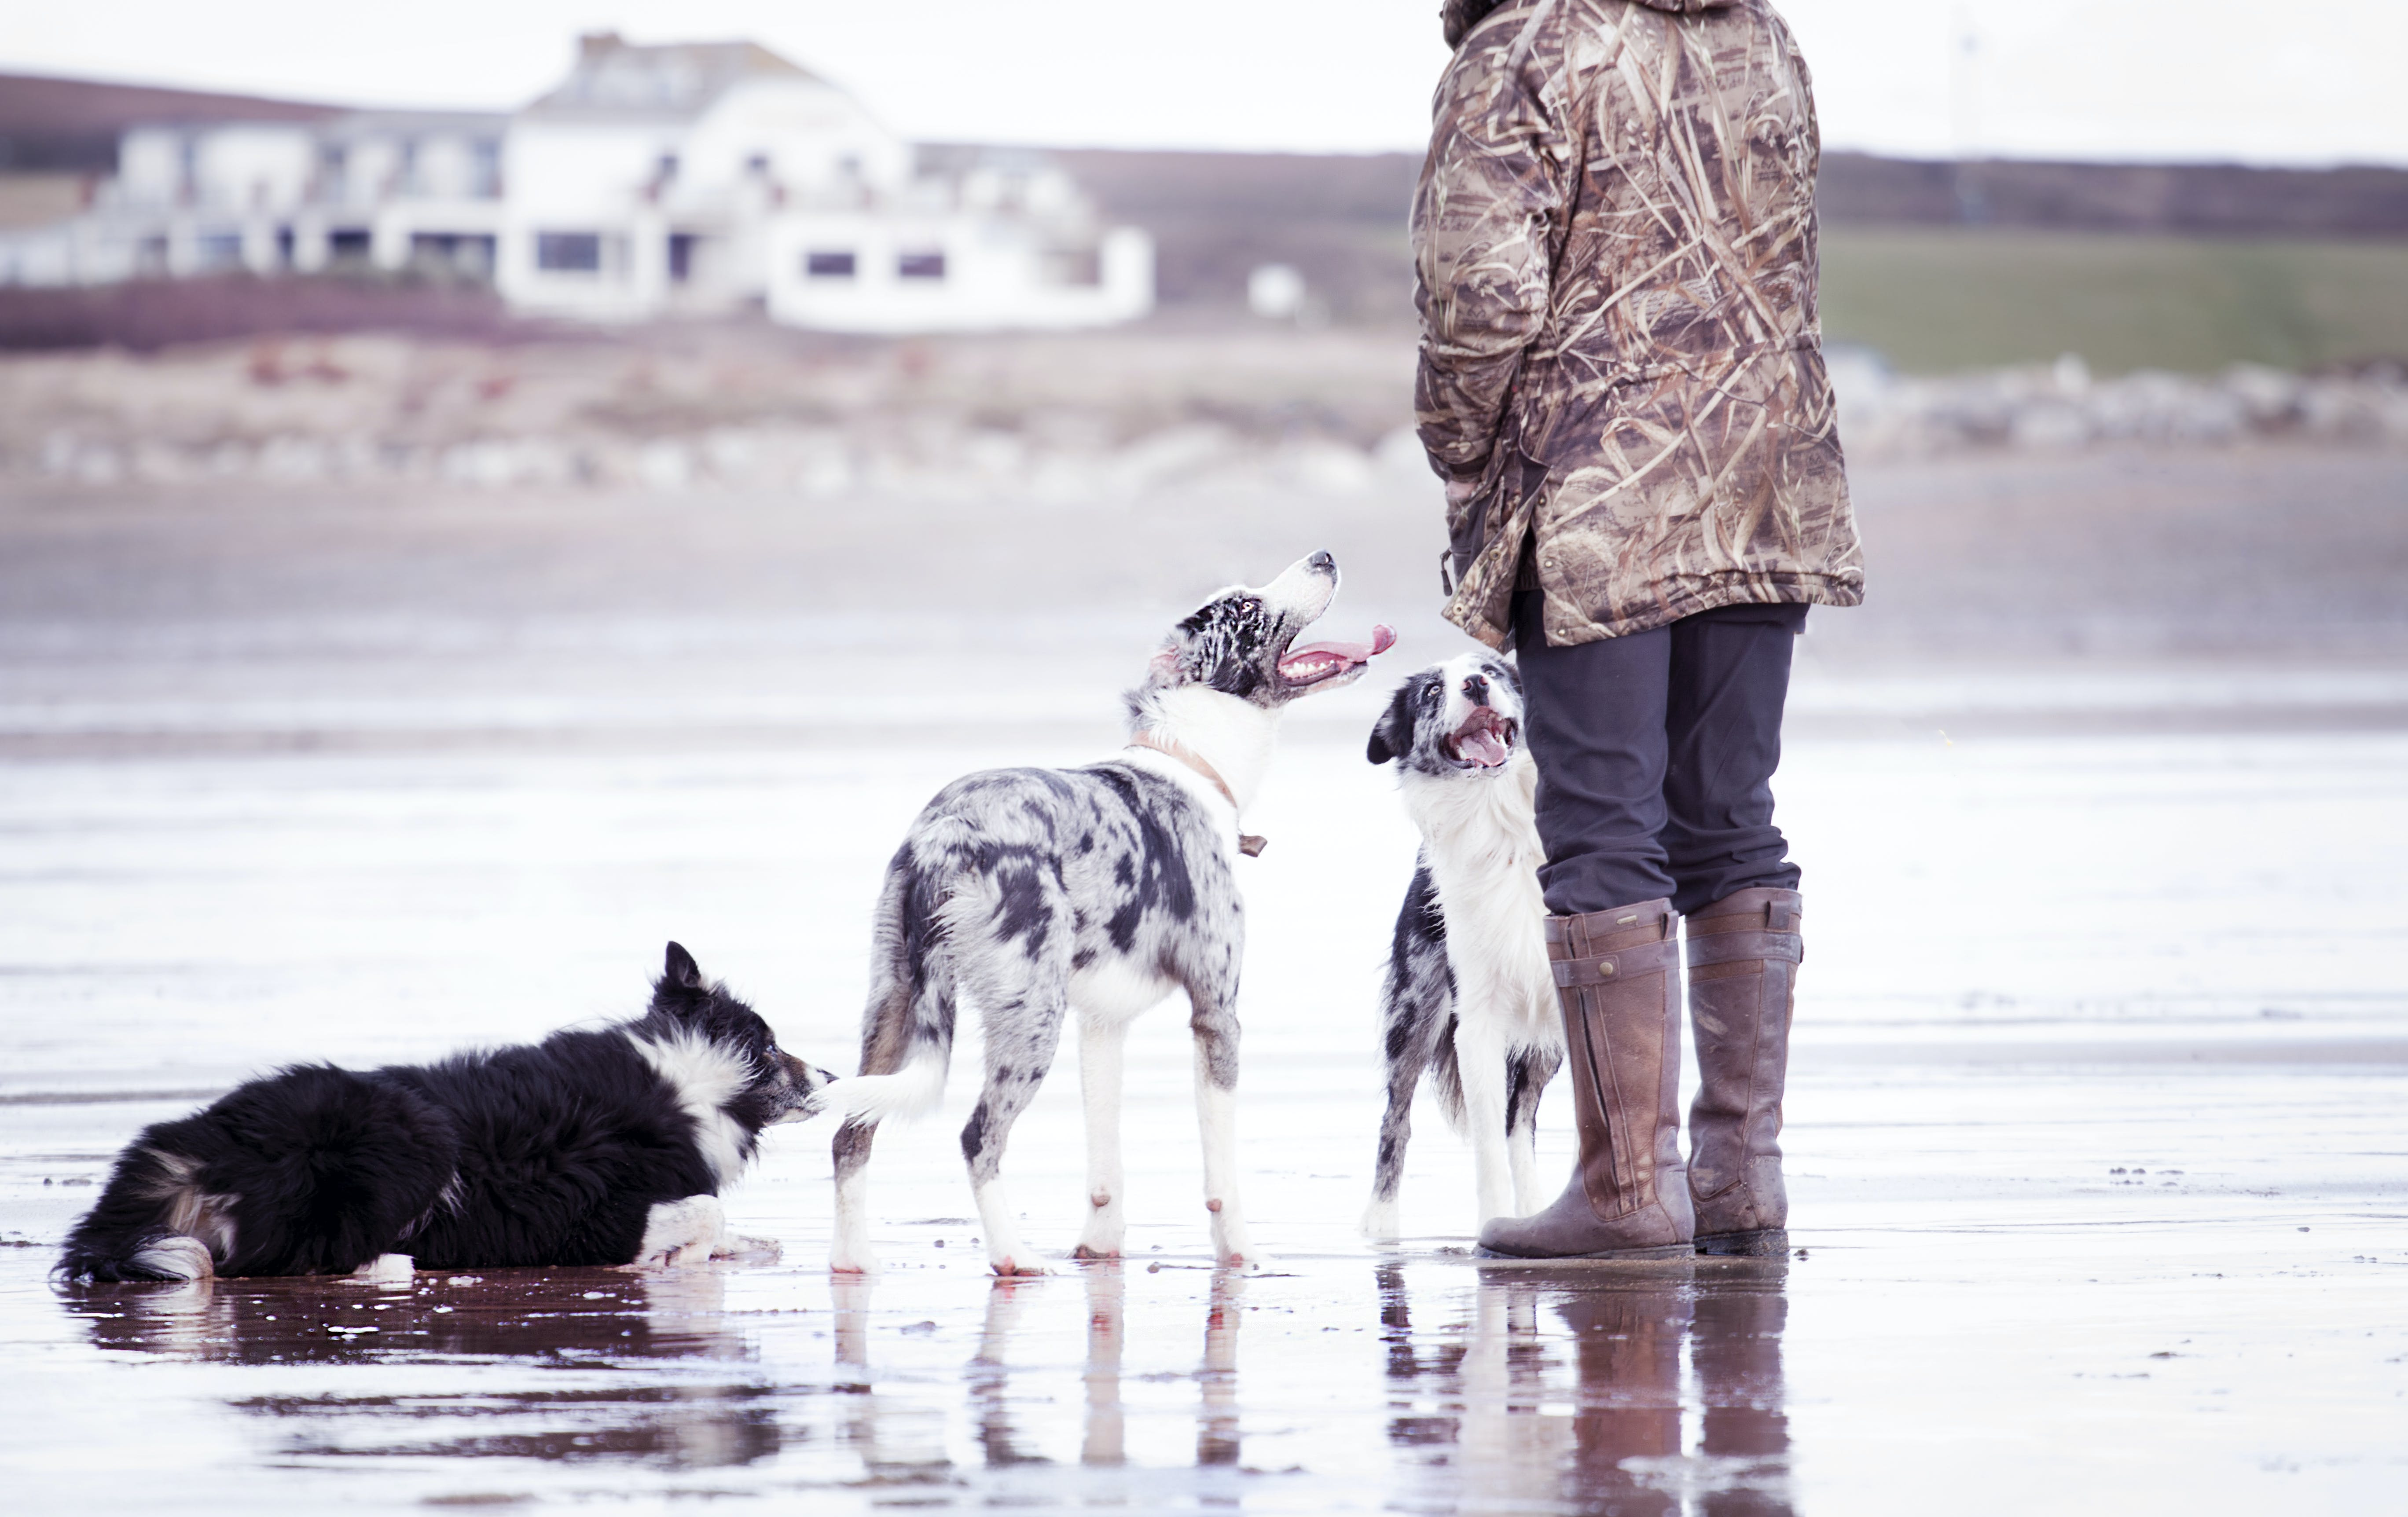 Person Together With Dogs in Shallow Focus Photography